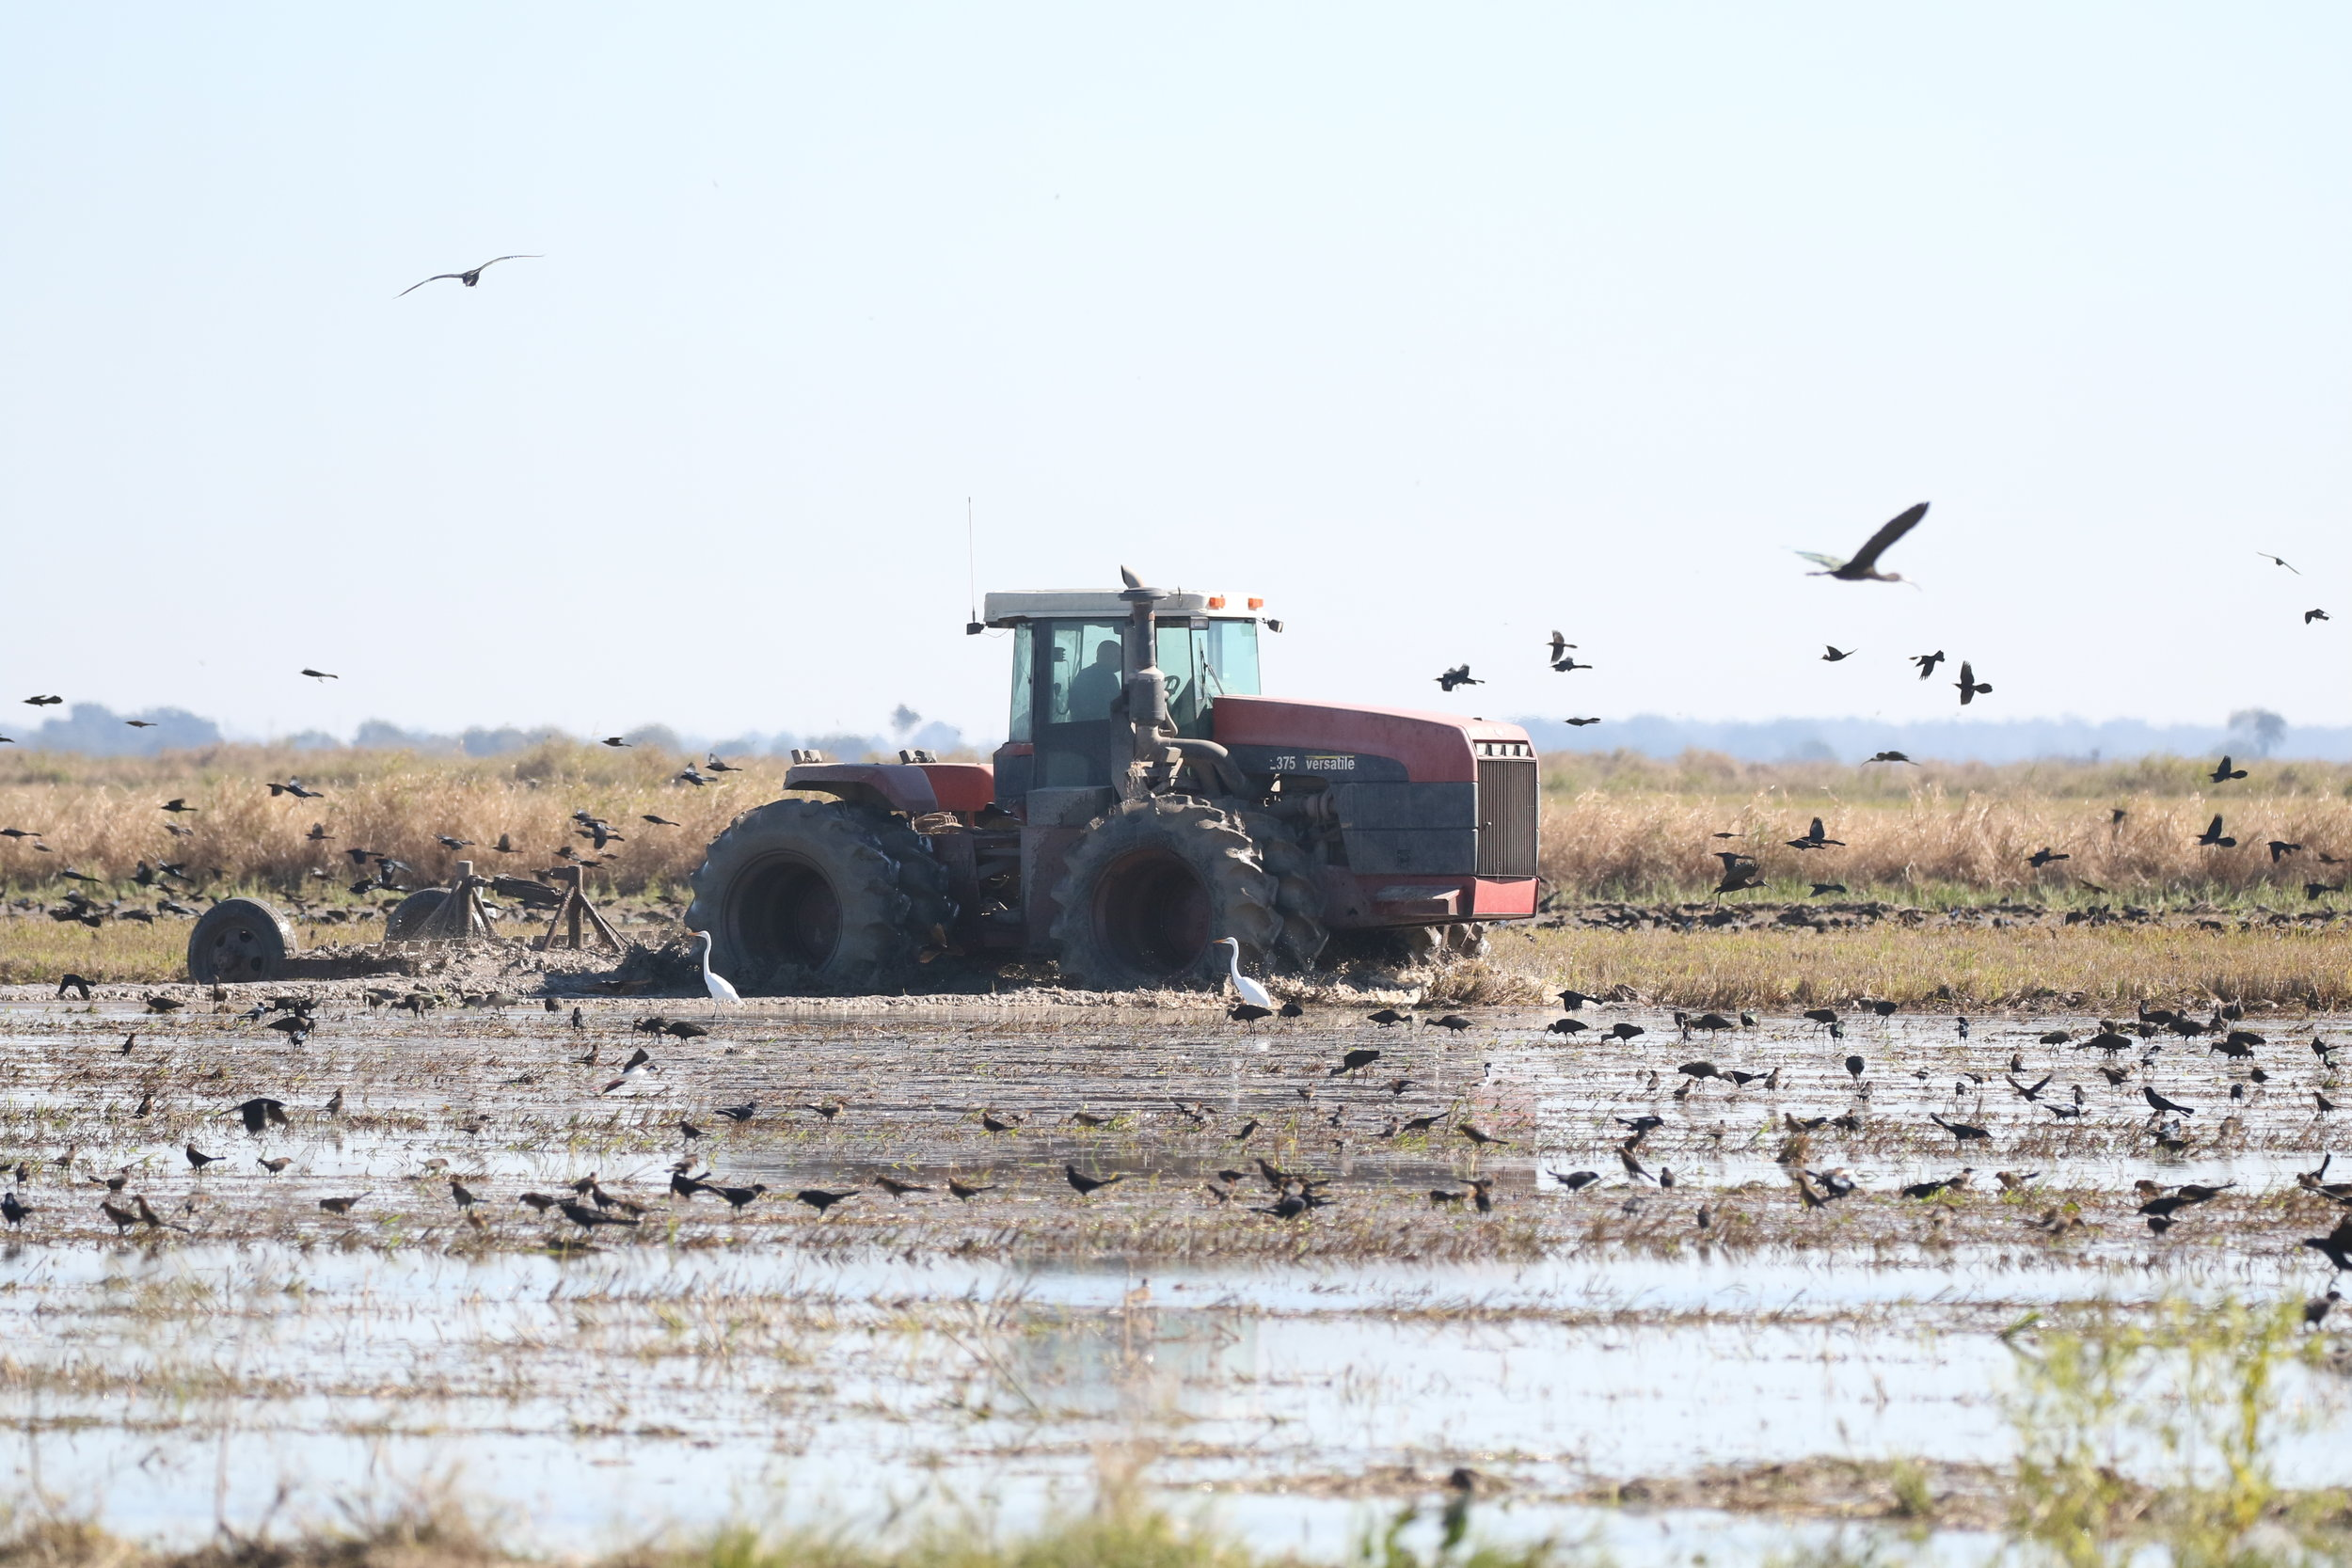 The next field over was being worked with a tractor, dredging up lots of tasty treats for the birds.